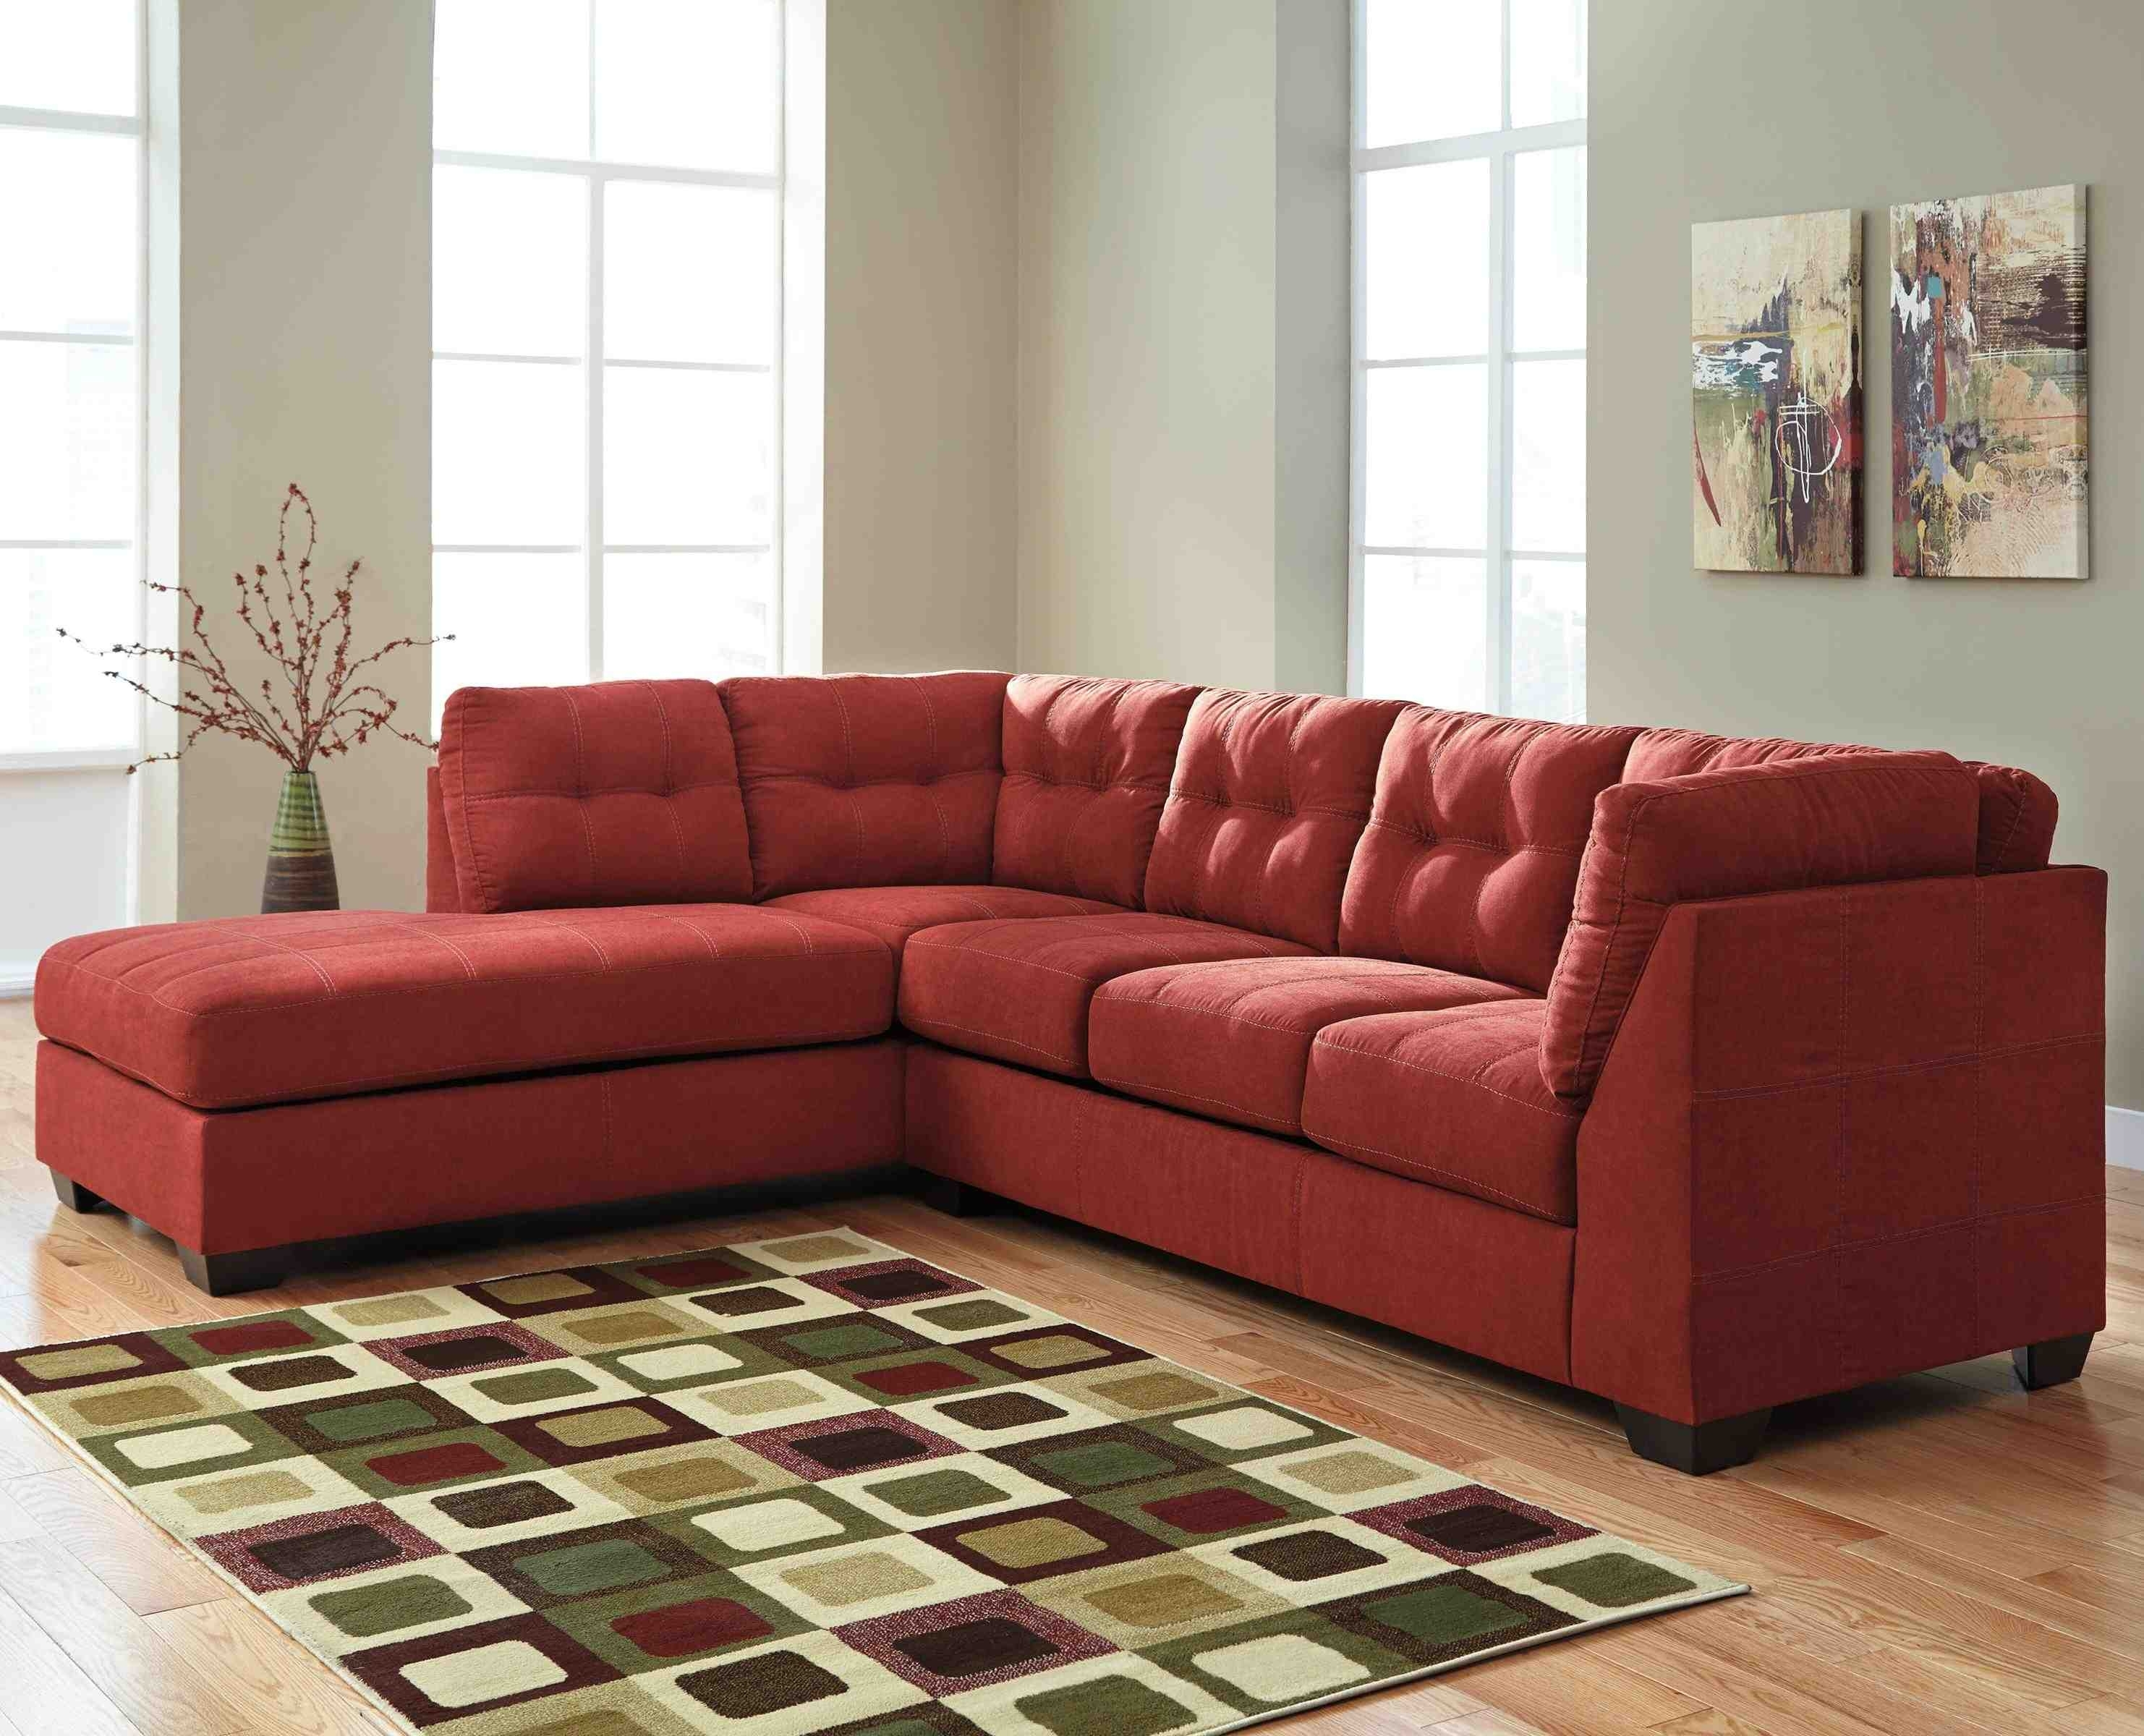 Microfiberctional Sofa With Chaise Amazing Photo Inspirations within Arrowmask 2 Piece Sectionals With Sleeper & Left Facing Chaise (Image 20 of 30)